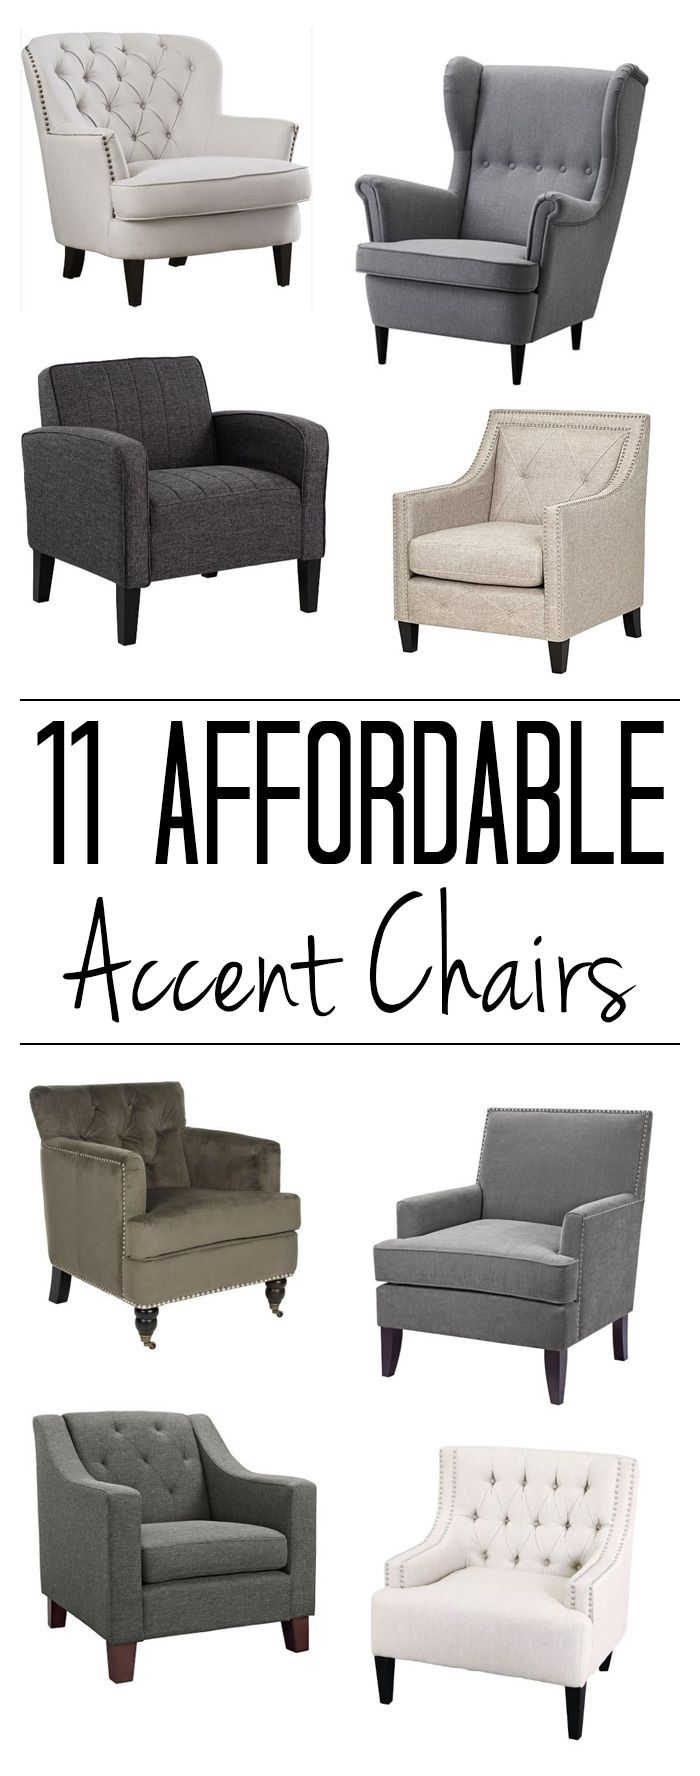 Click for sources to 11 cheap accent chairs, including the 8 shown here! I can't believe the prices on some of them!